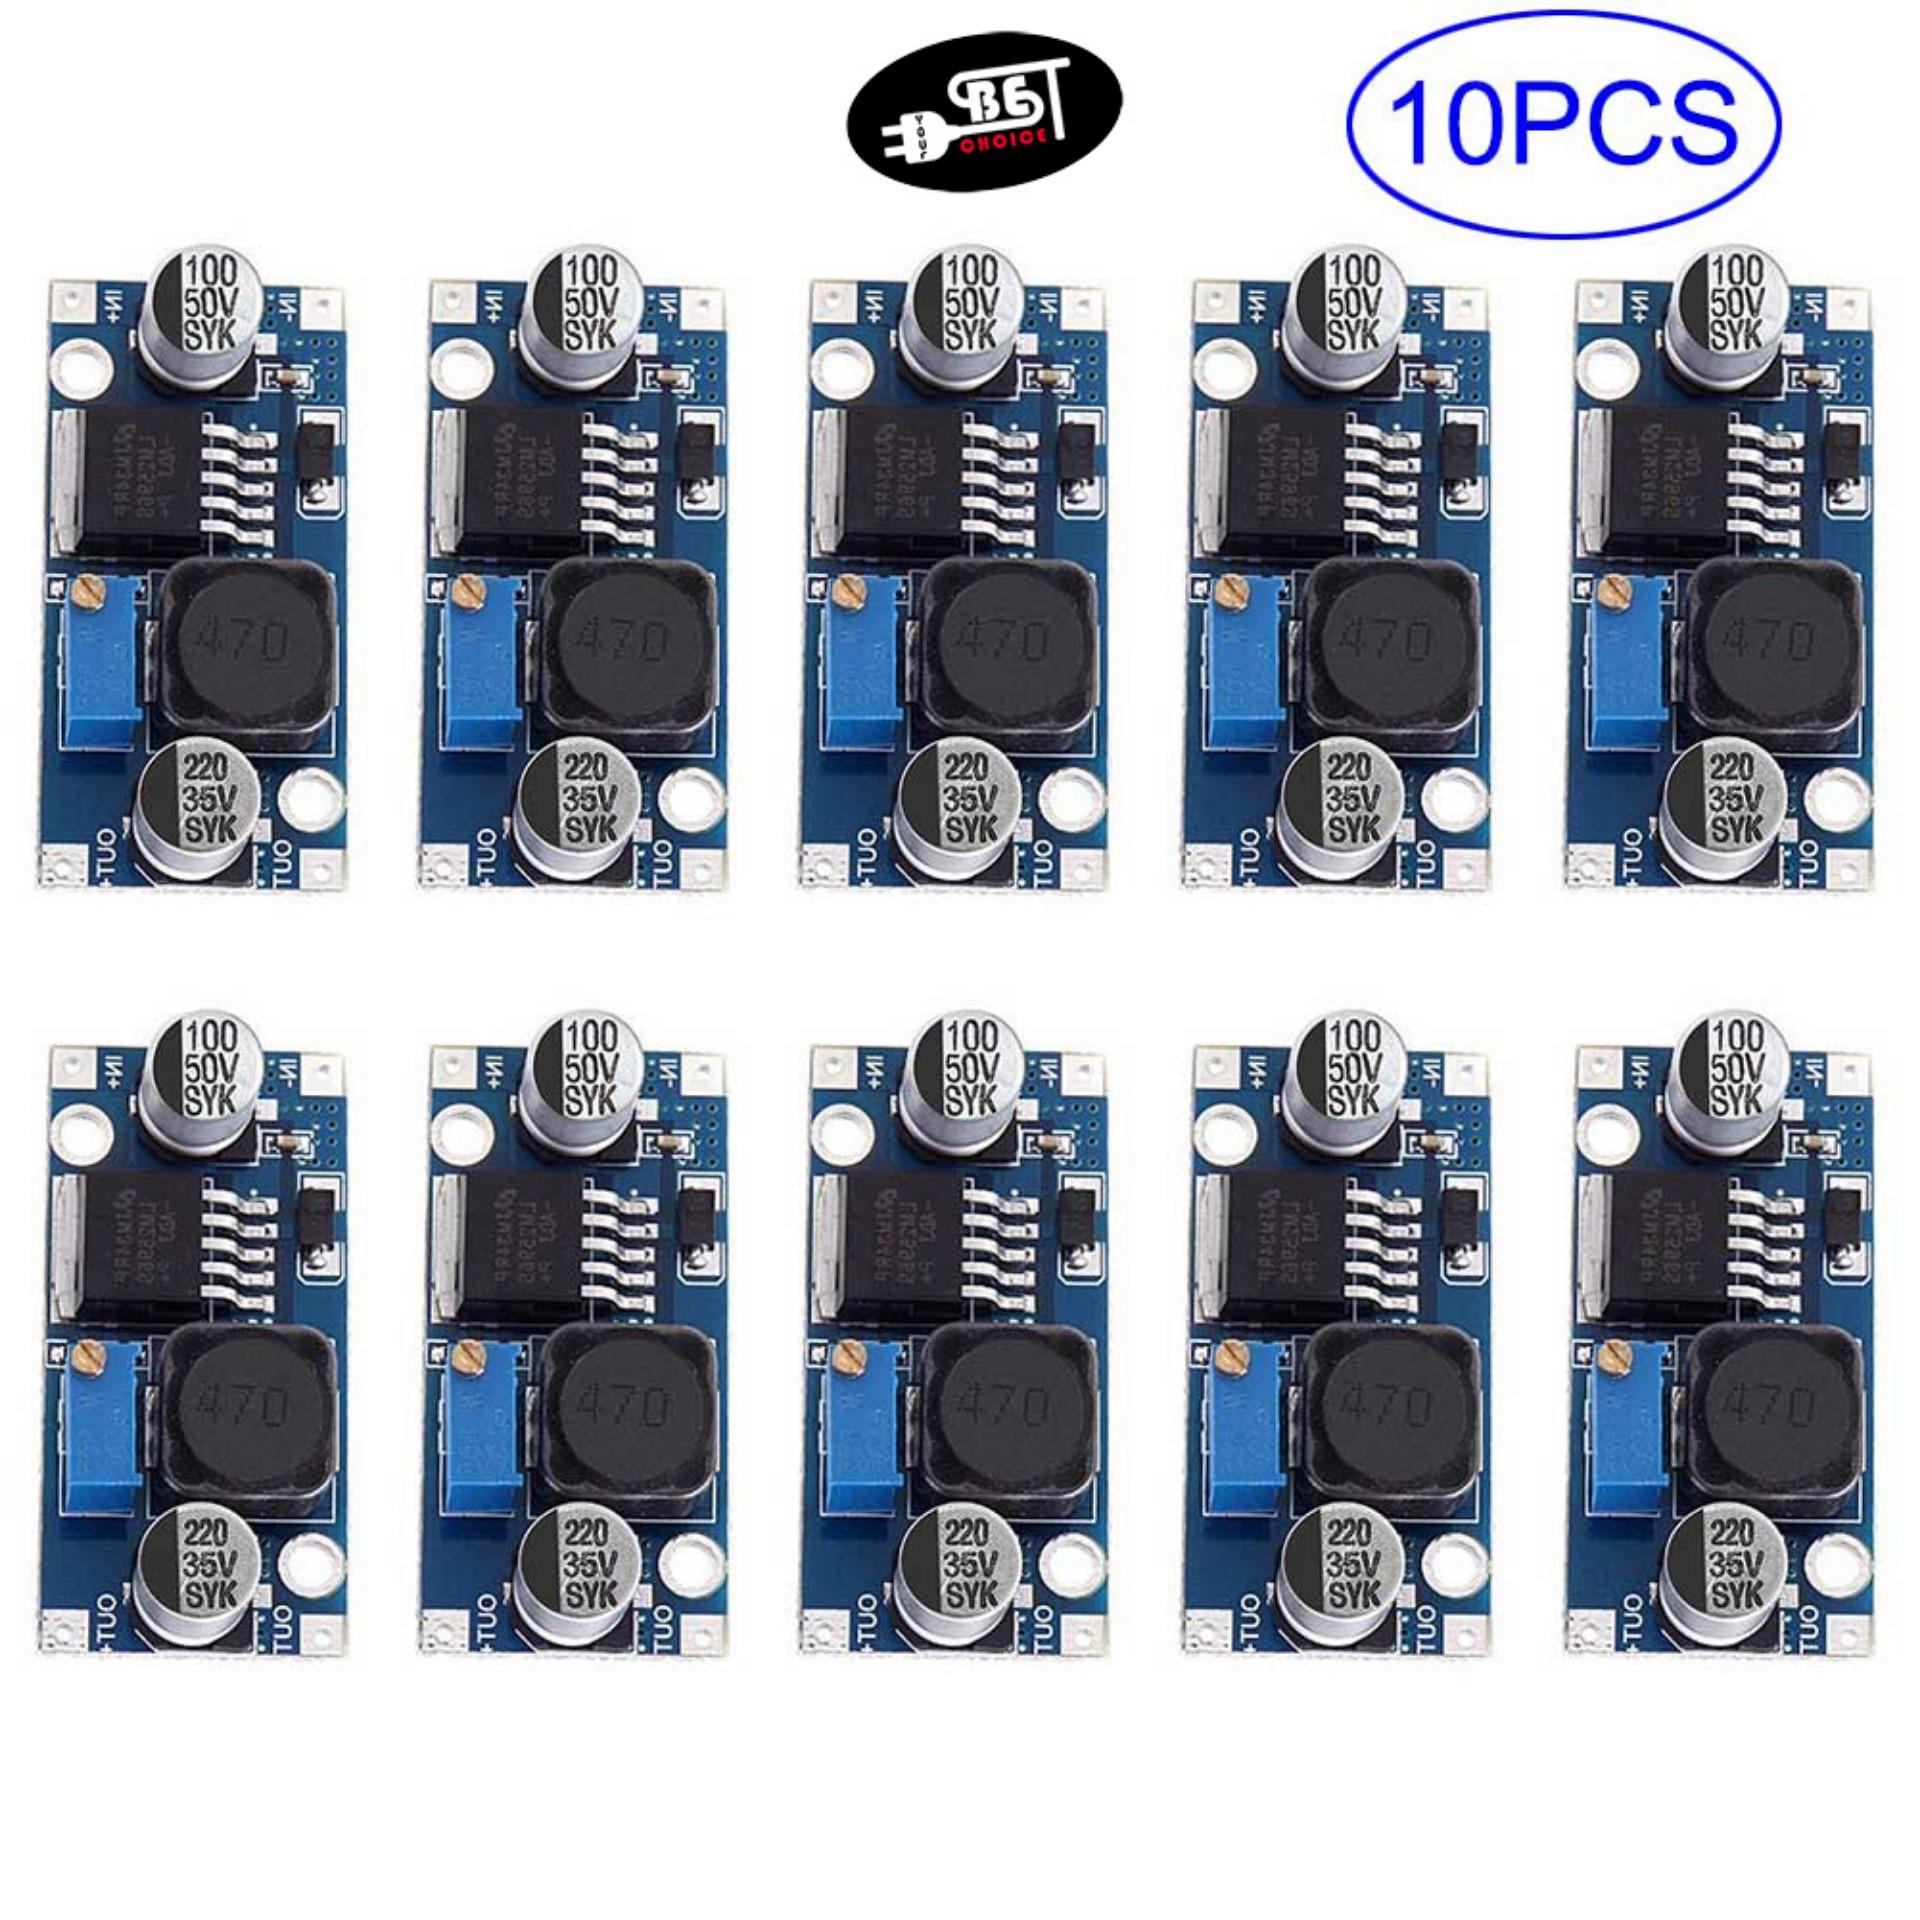 Oem Philippines Pc Power Supply For Sale Prices Reviews 01v To 50v Variable Ybc 10pcs Dc Voltage Step Down Regulator Module Converter Lm2596 Intl